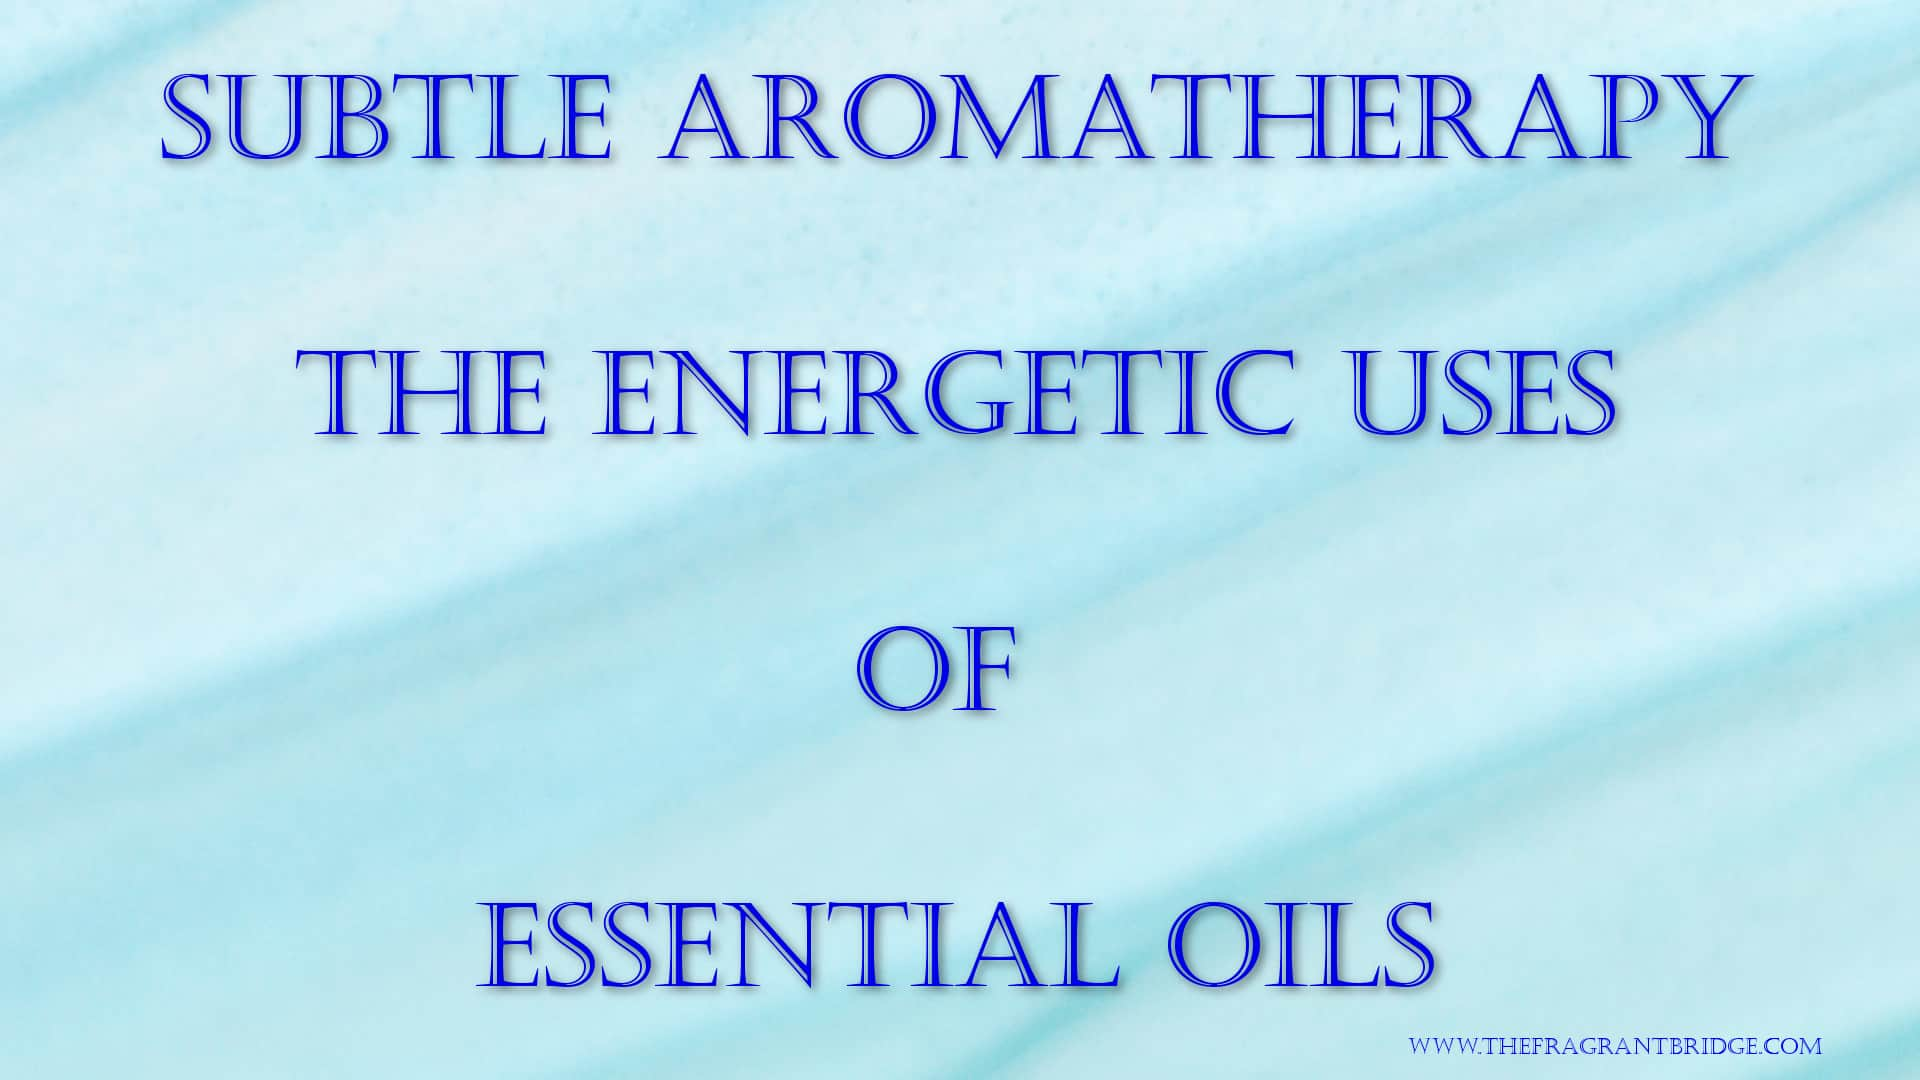 Subtle Aromatherapy - The Energetic Uses of Essential Oils